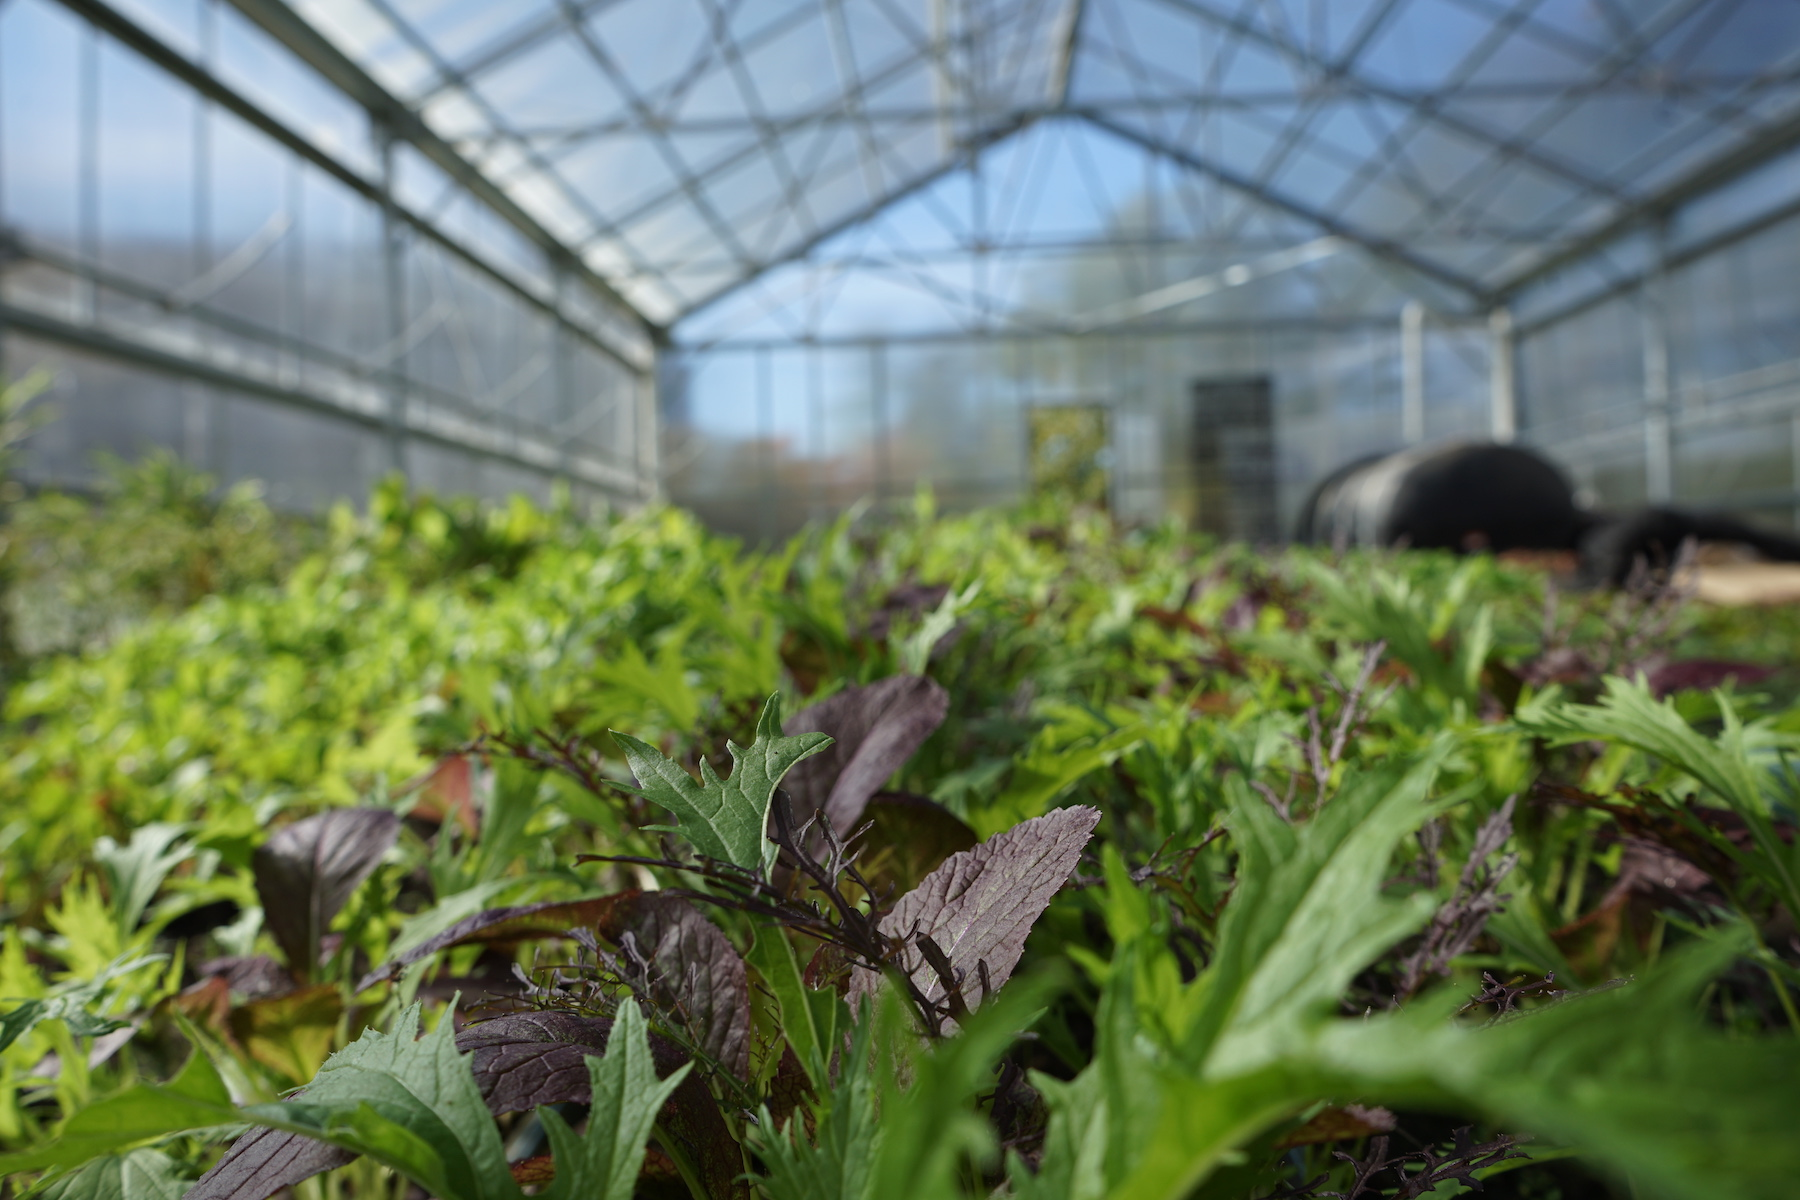 An Inside View of the Greenhouse. Finished in 2017, there is a 1,800-square-foot urban agriculture greenhouse and urban farm on the University's East Campus. In addition to being a full scale agricultural production site, this location also doubles as a testing ground where university researchers and students can work with community members to develop new and efficient ways to grow and develop organic and sustainable produce.